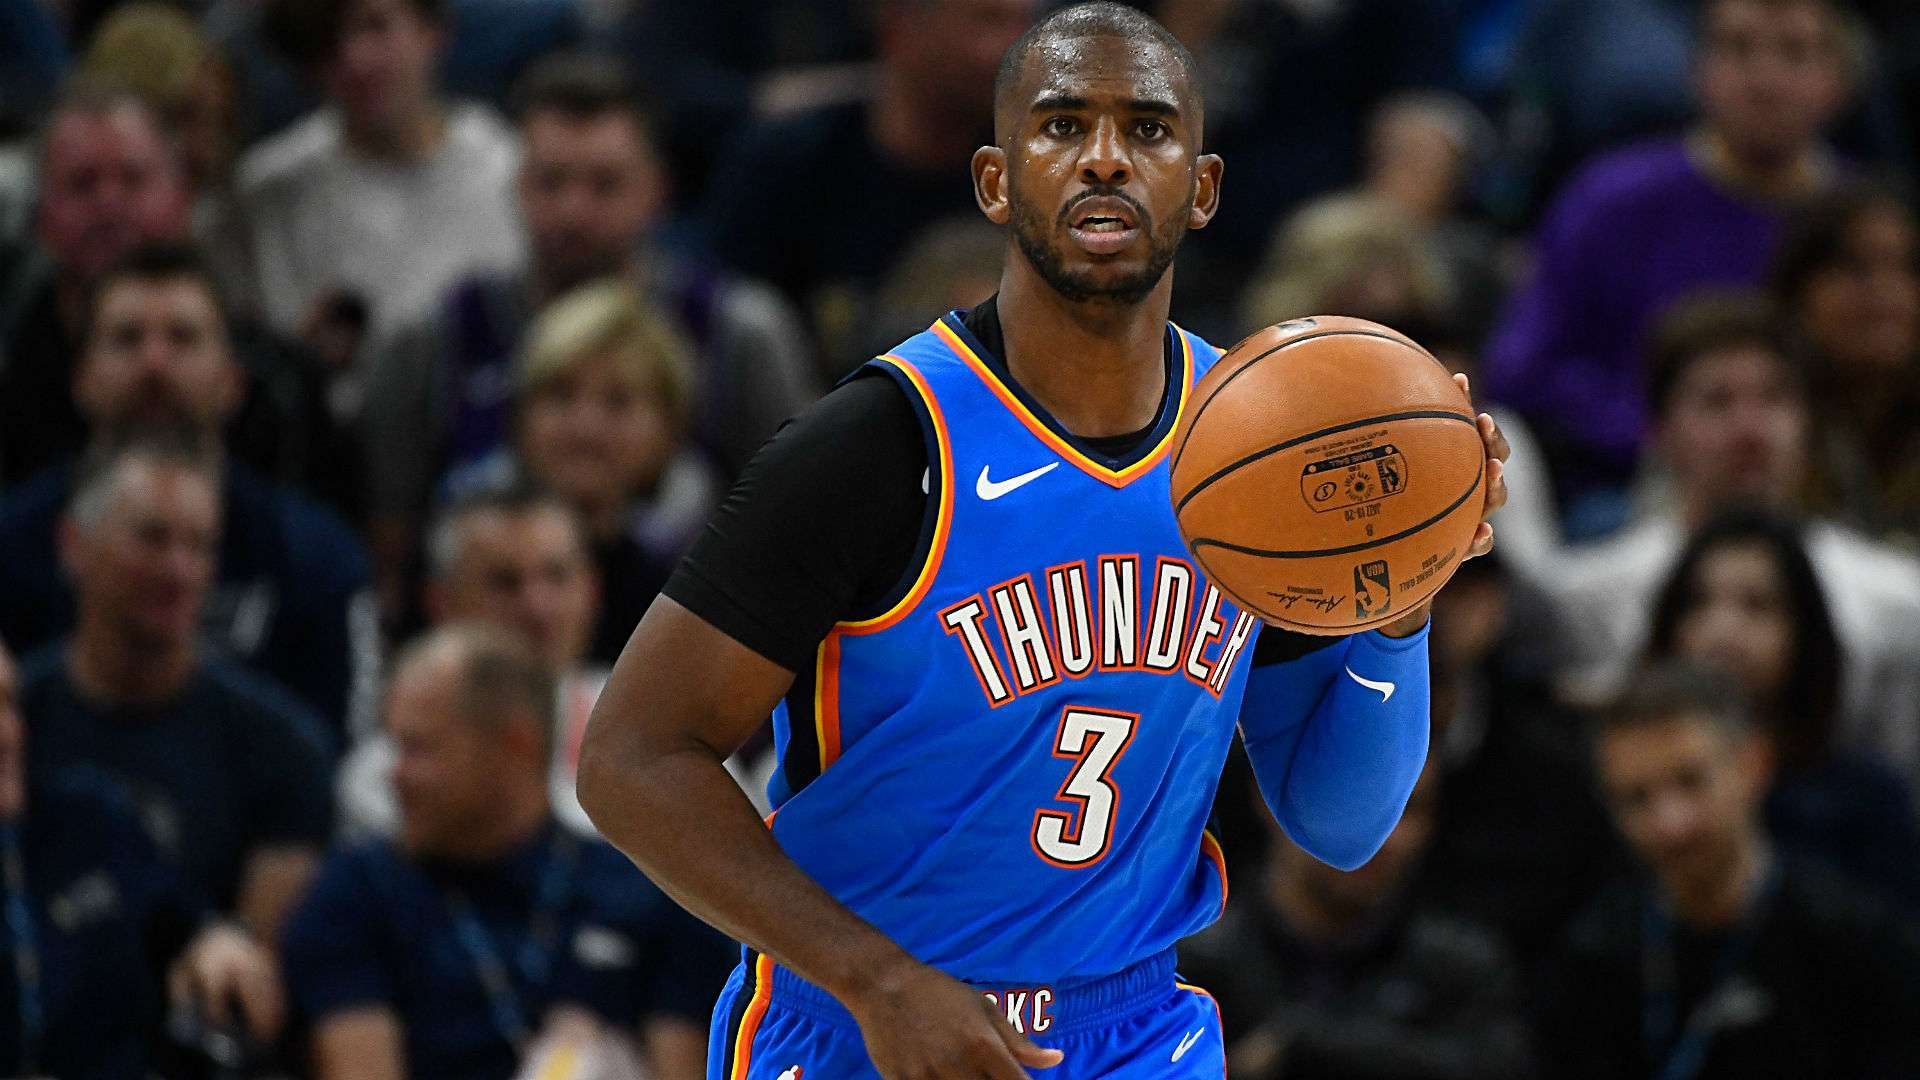 Chris Paul Trade Grades Suns Make Push For Contention Thunder Continue Loading Up On Draft Picks Sporting News